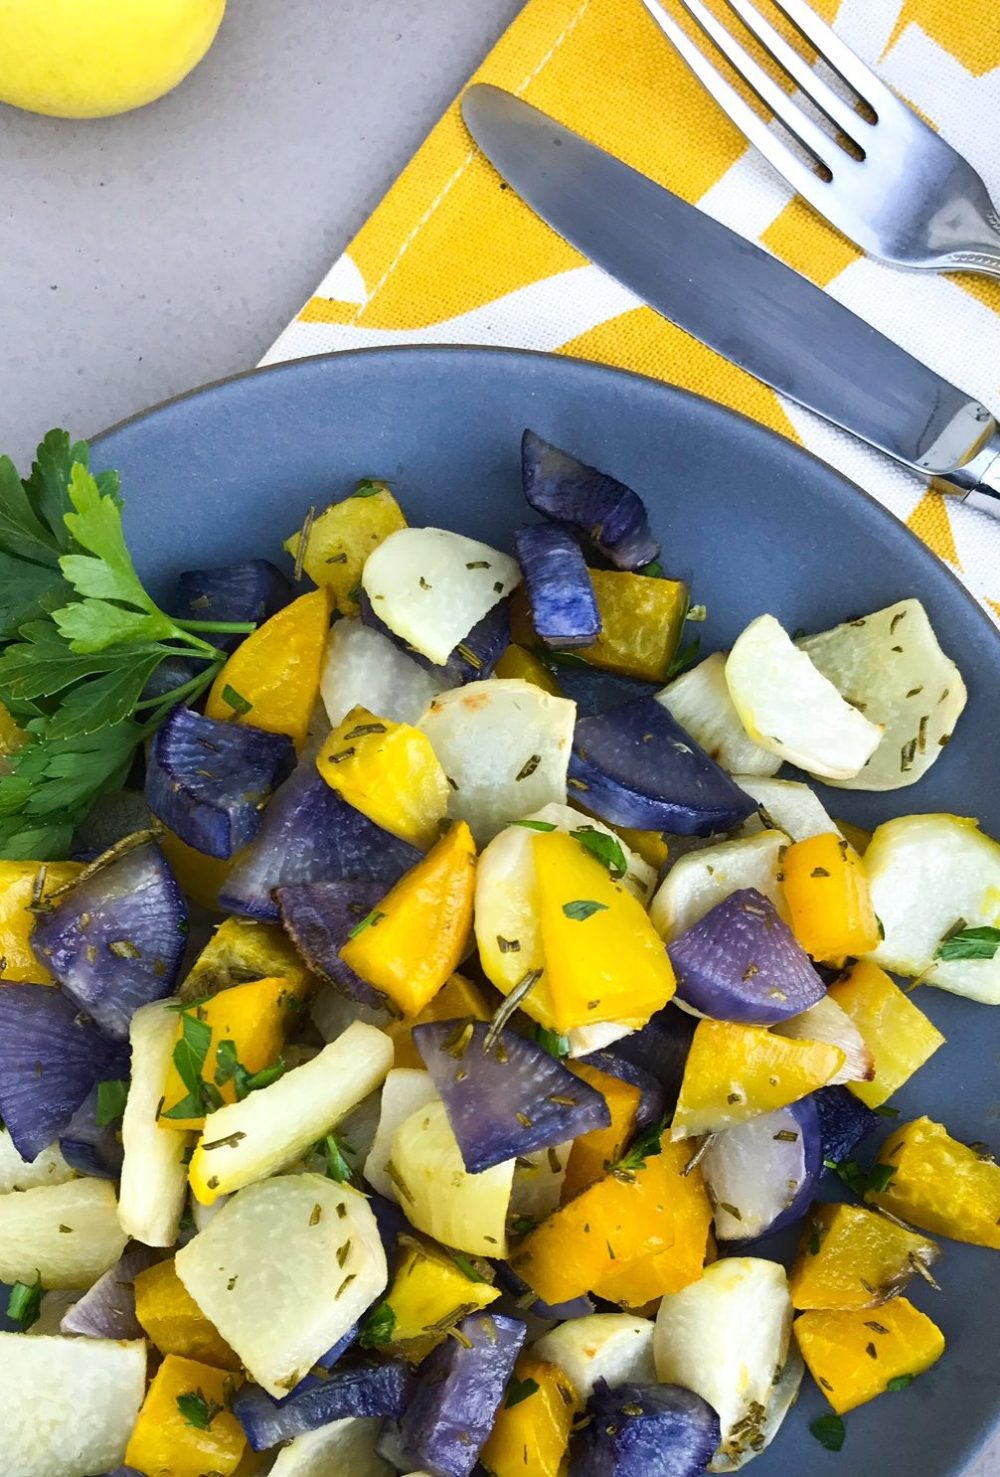 Roasted Kohlrabi and Root Vegetables | Paleo, Whole30, Plant-based